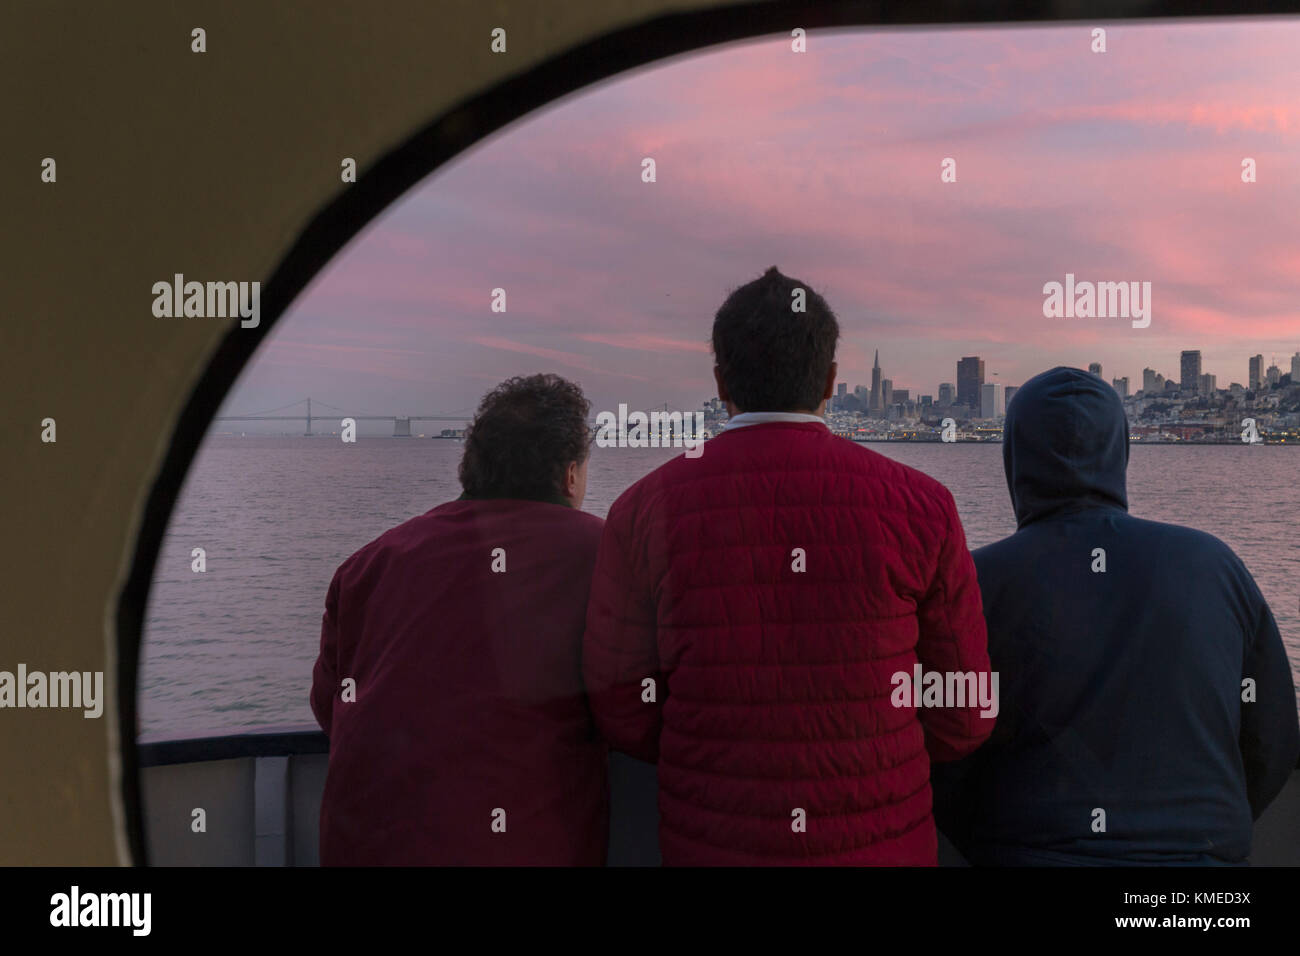 rear view of three passengers on ferry from Sausalito to San Francisco looking at view of city,California,USA - Stock Image